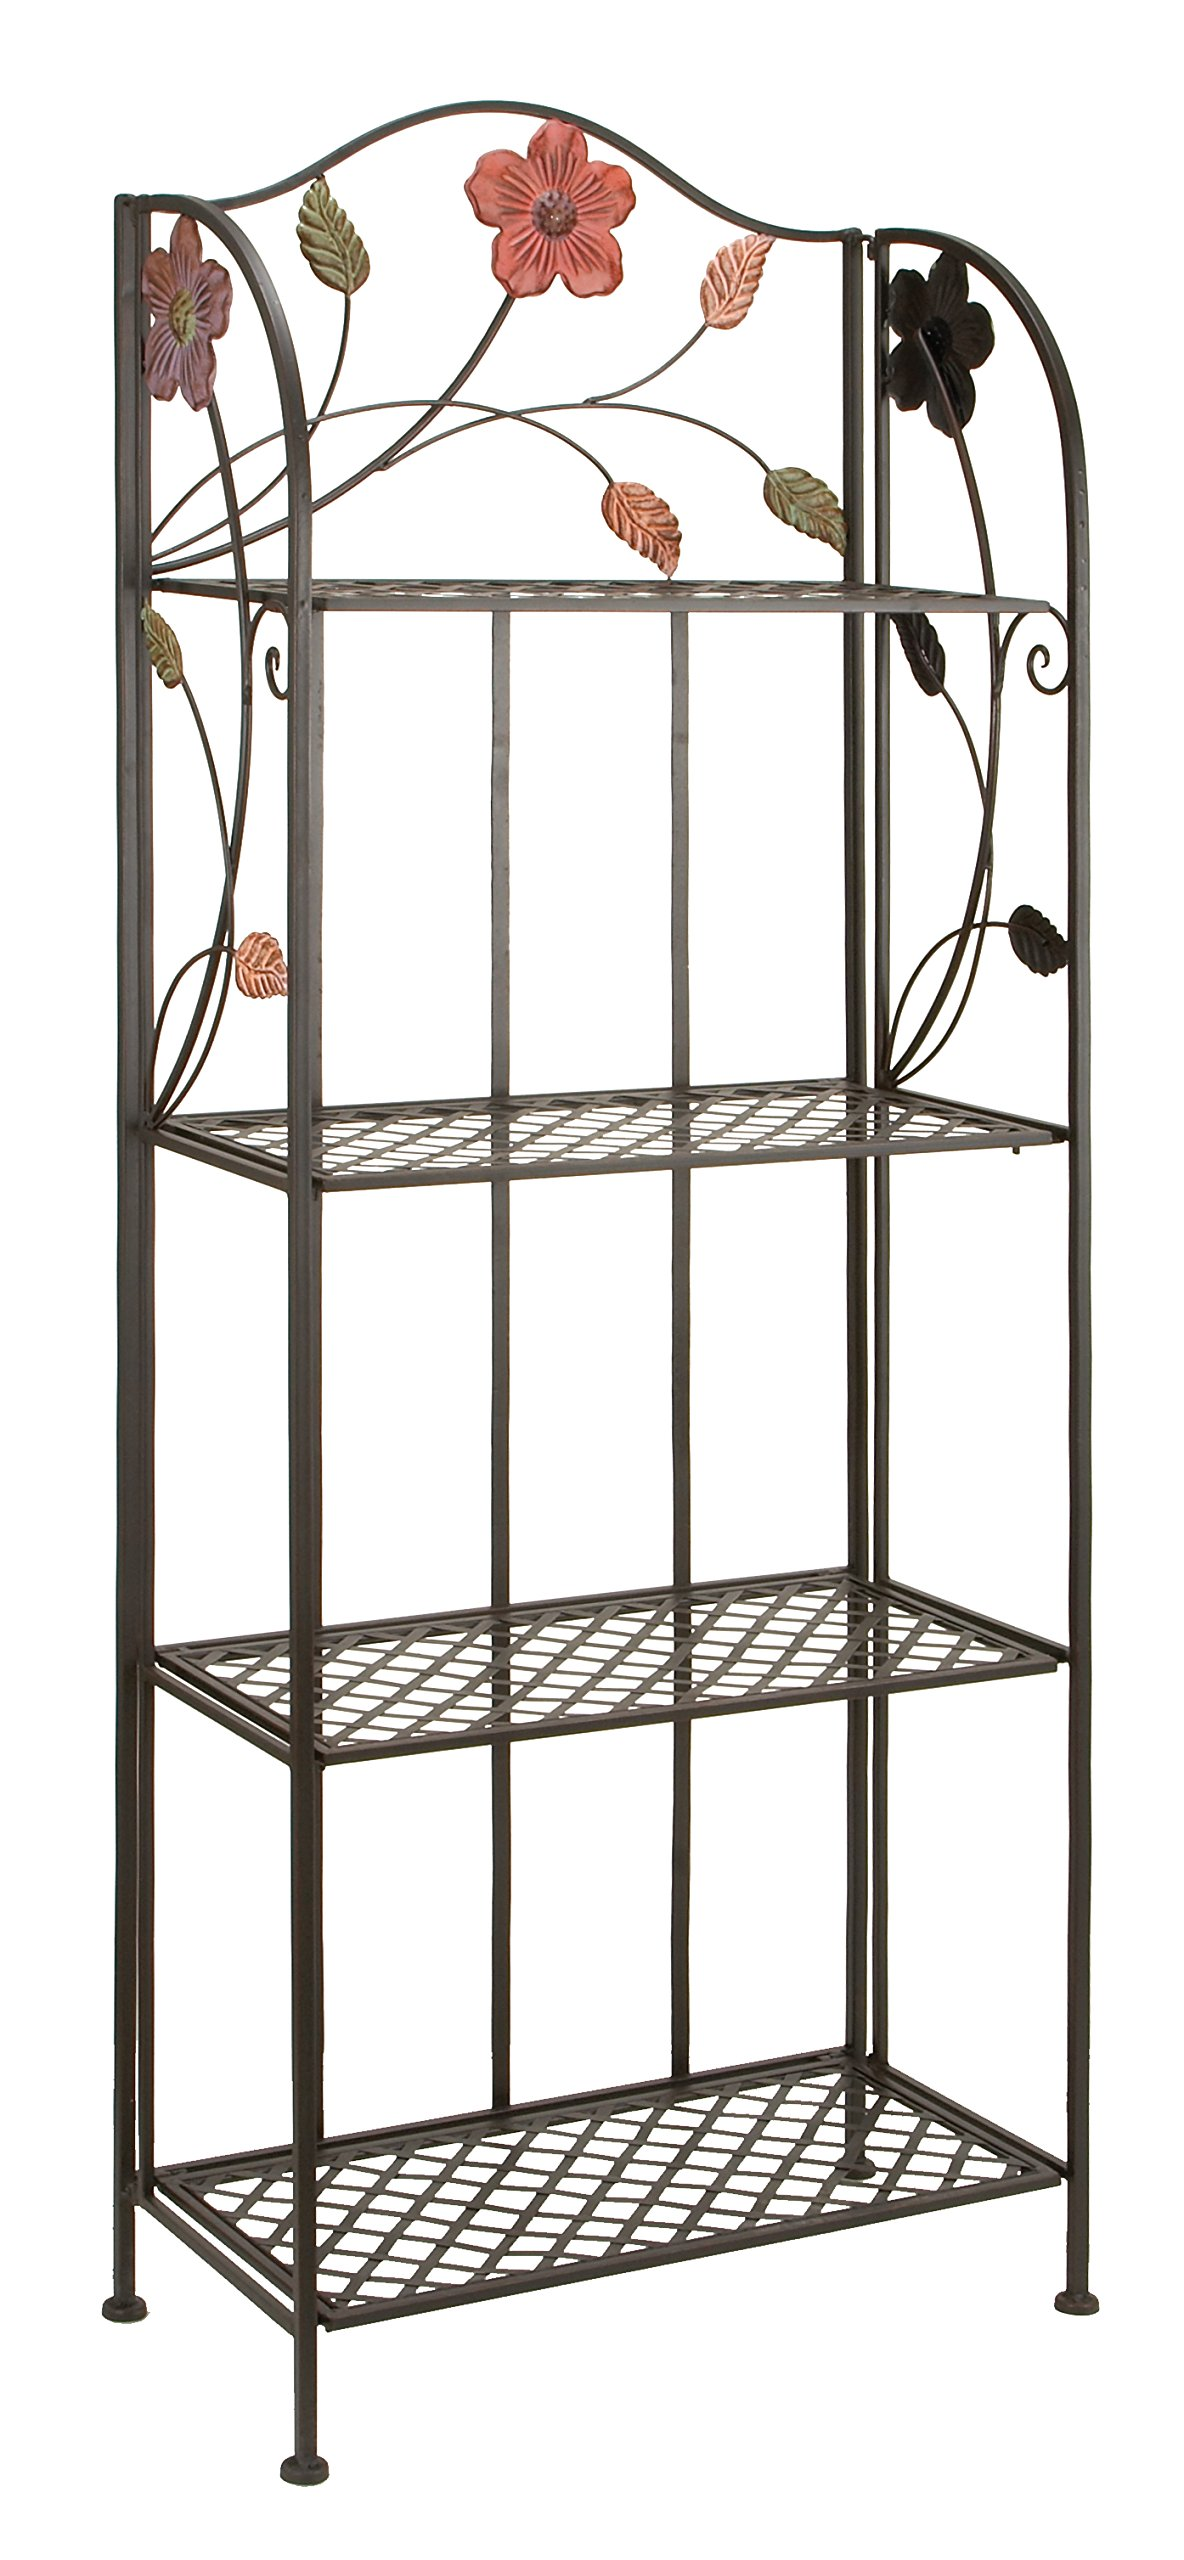 Deco 79 63065 Metal Bakers Rack, 25 by 68-Inch by Deco 79